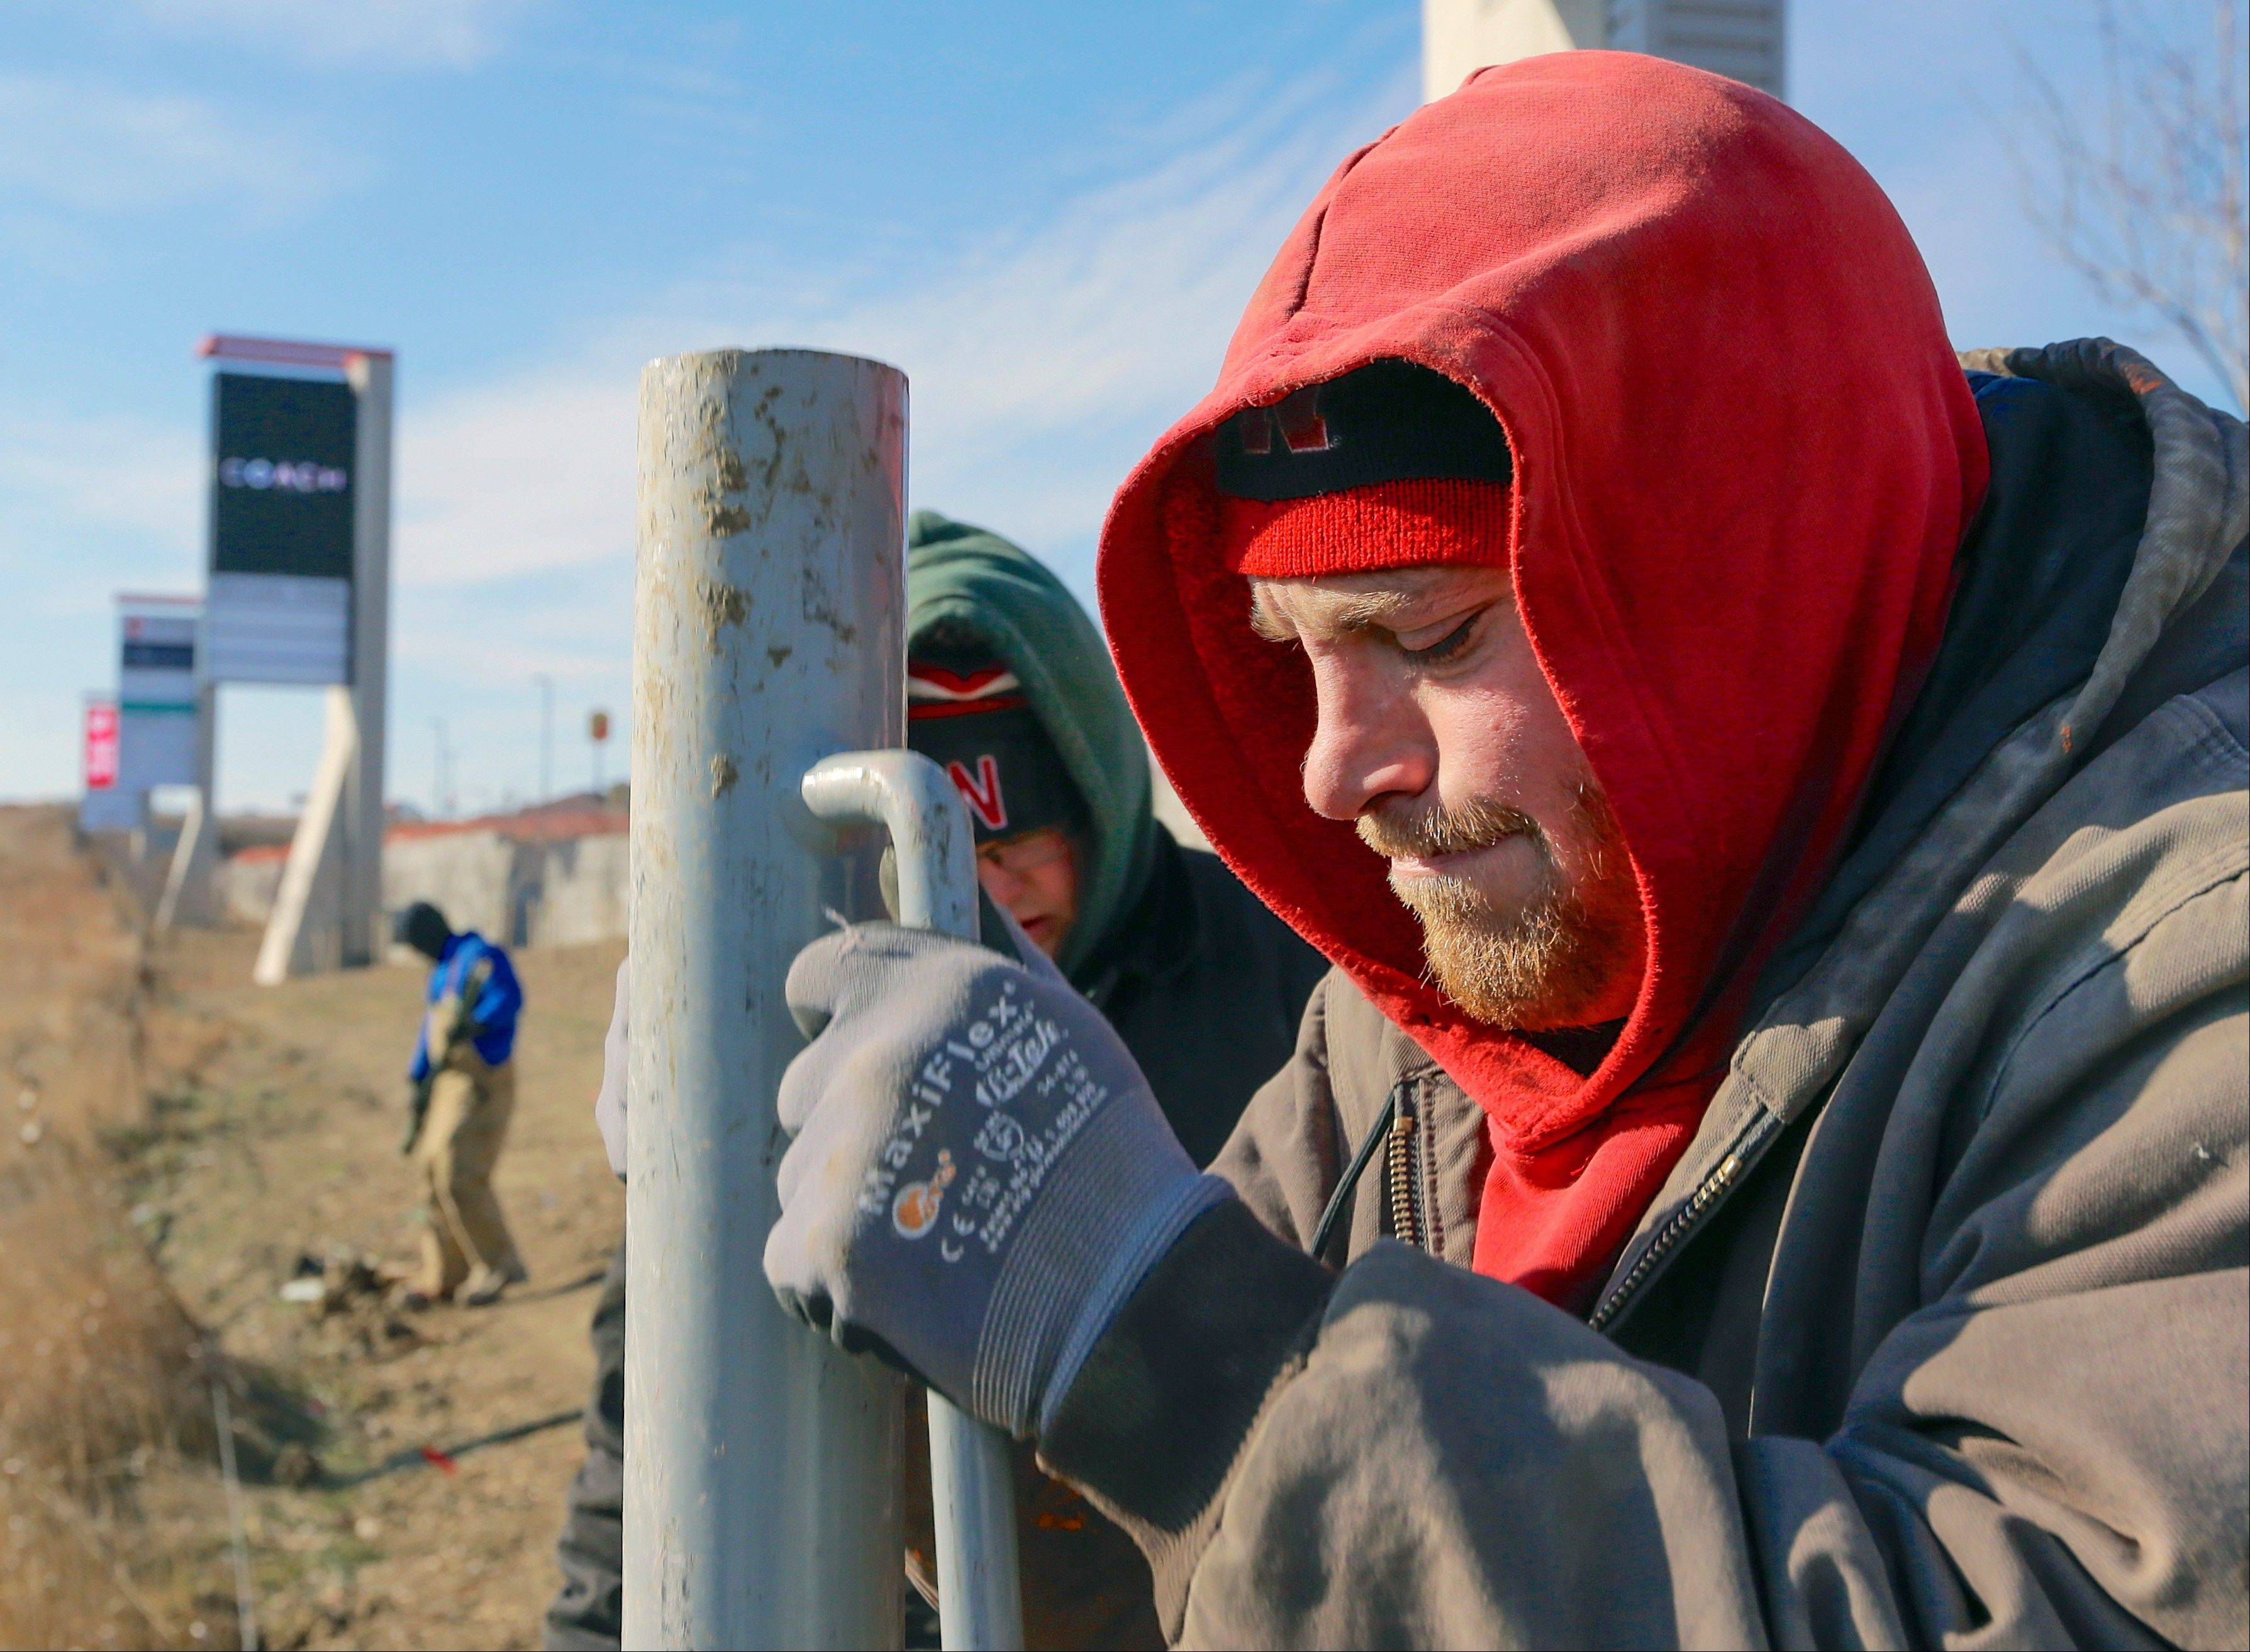 Craig Sheldon is all bundled up Friday as he plants fence posts into the ground in sub-freezing conditions, in Gretna, Neb.